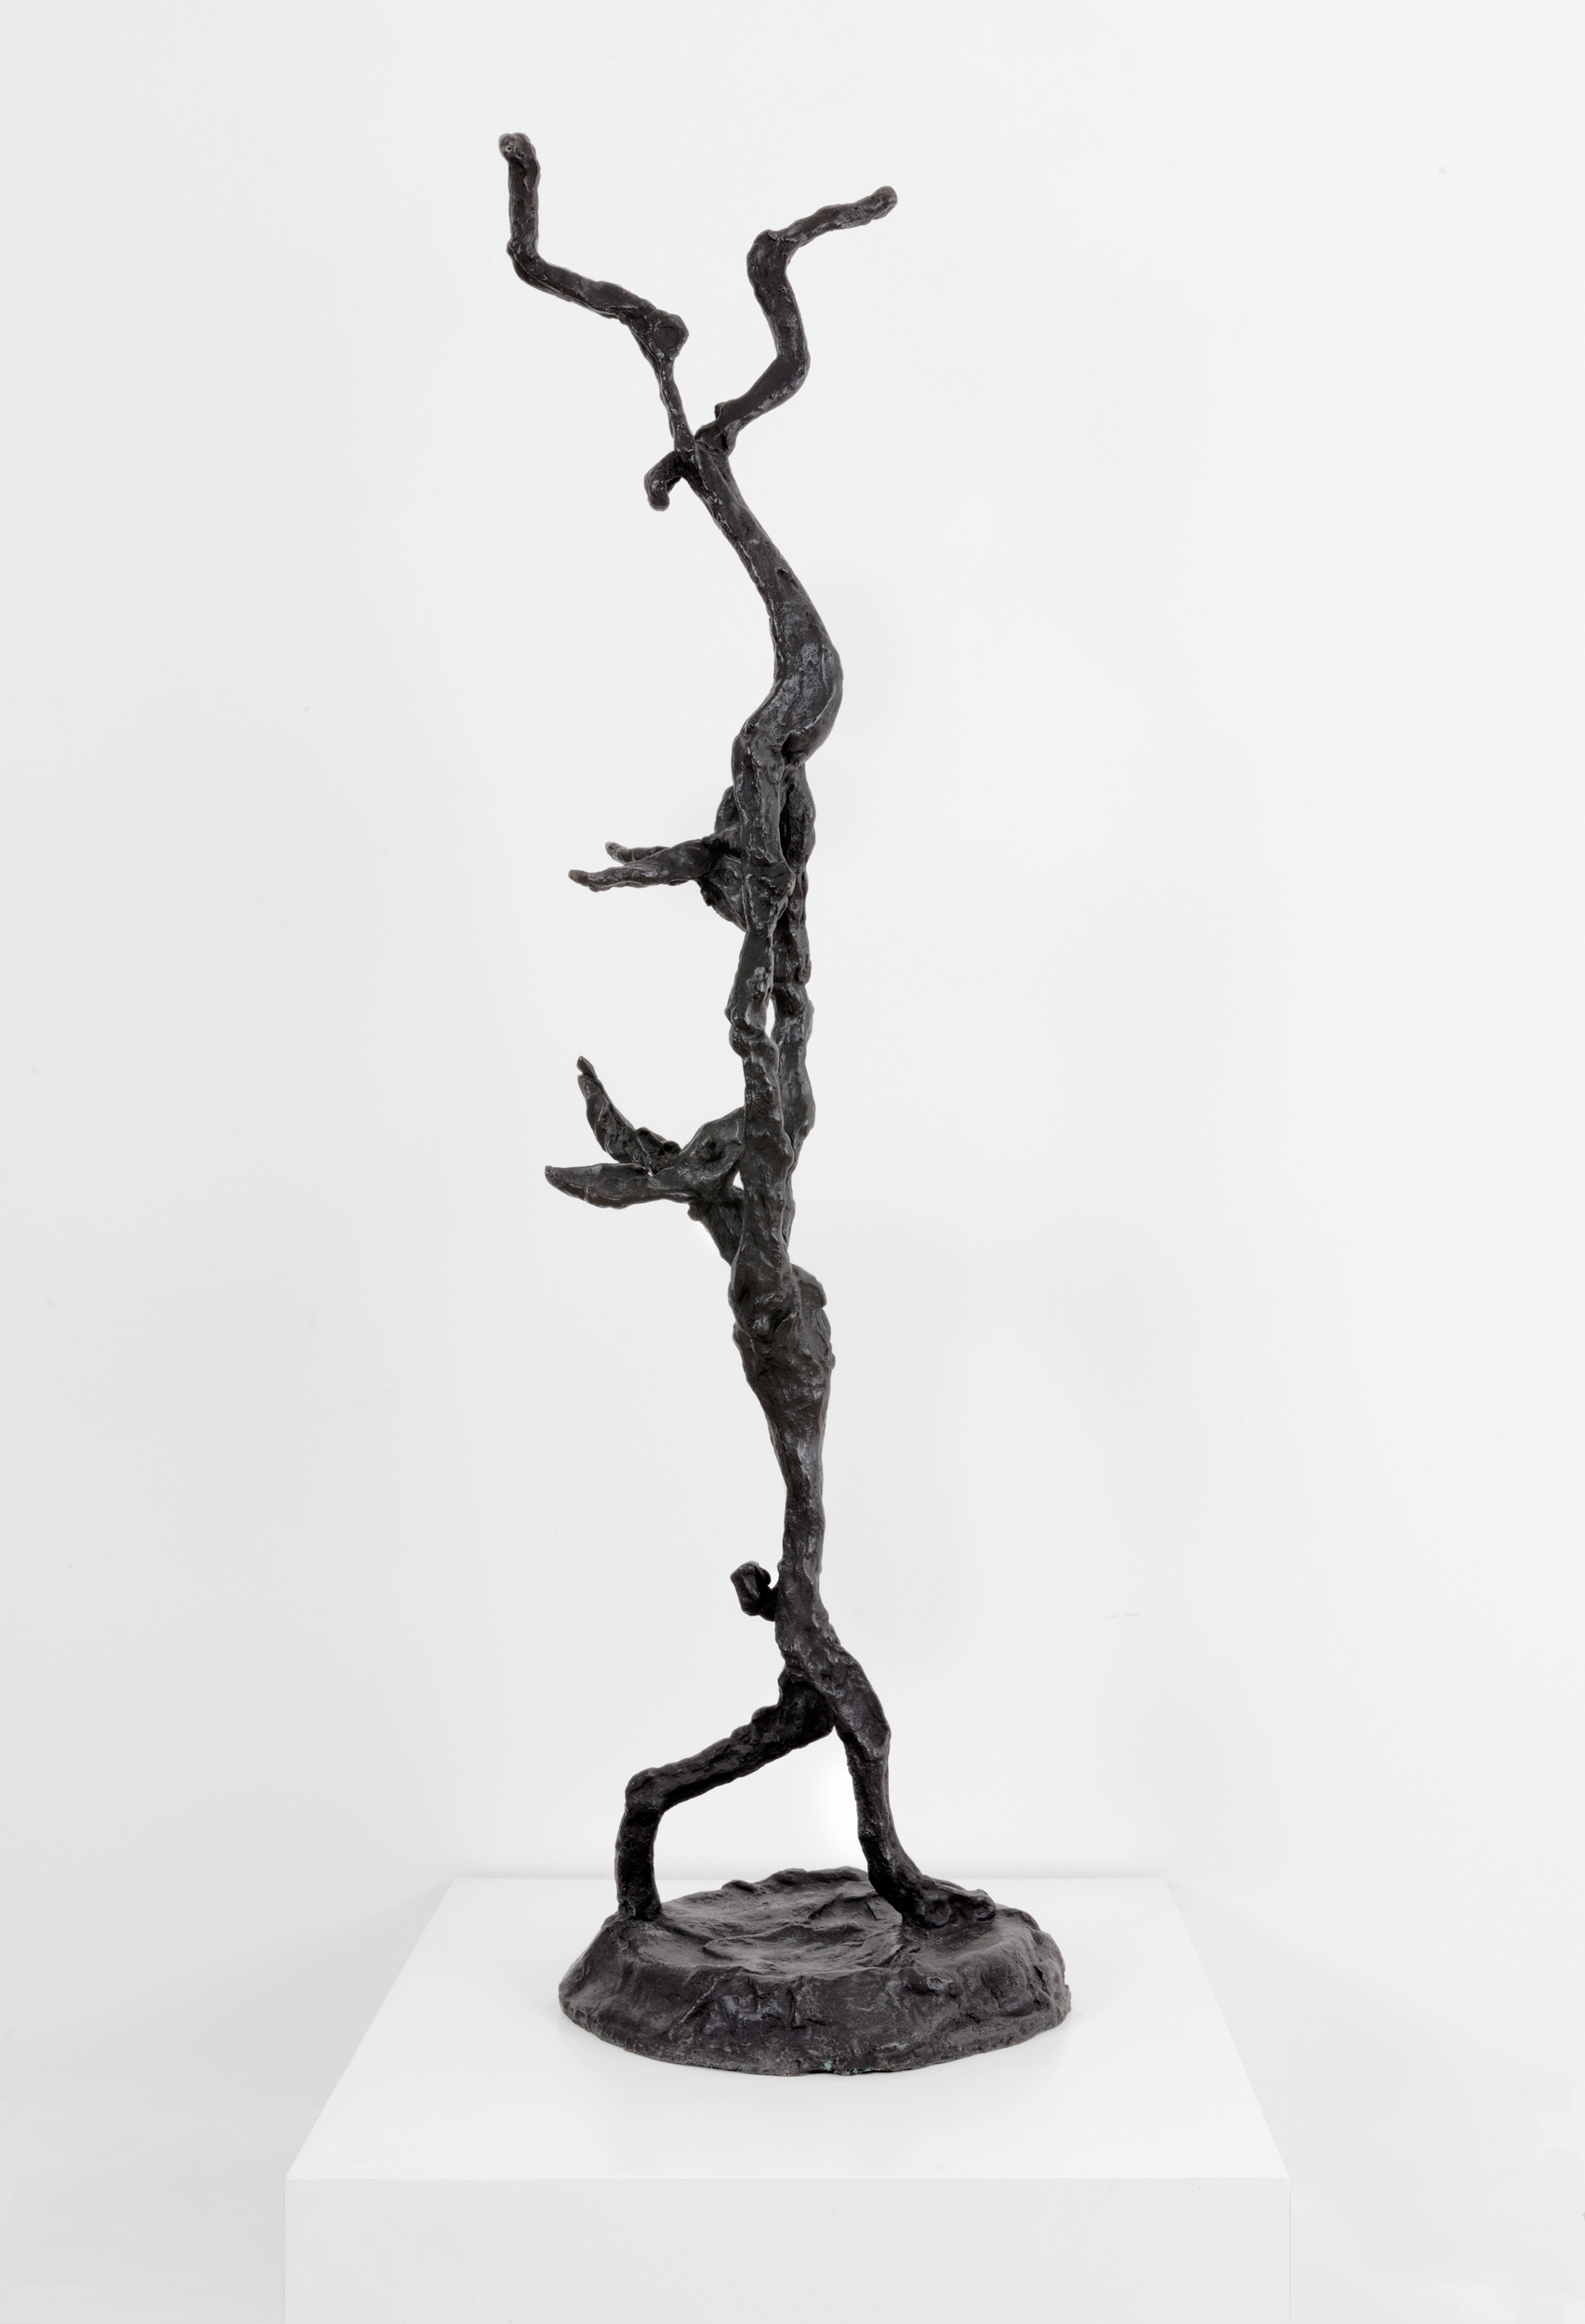 Barry Flanagan,  Acrobats , 2004, bronze, 57 3/4 x 16 1/8 x 16 3/8 inches, 146.7 x 41 x 41.6 cm. Edition of 8 + 3 APs. © 2018 Barry Flanagan. Courtesy of the Estate of Barry Flanagan / Plubronze Ltd.